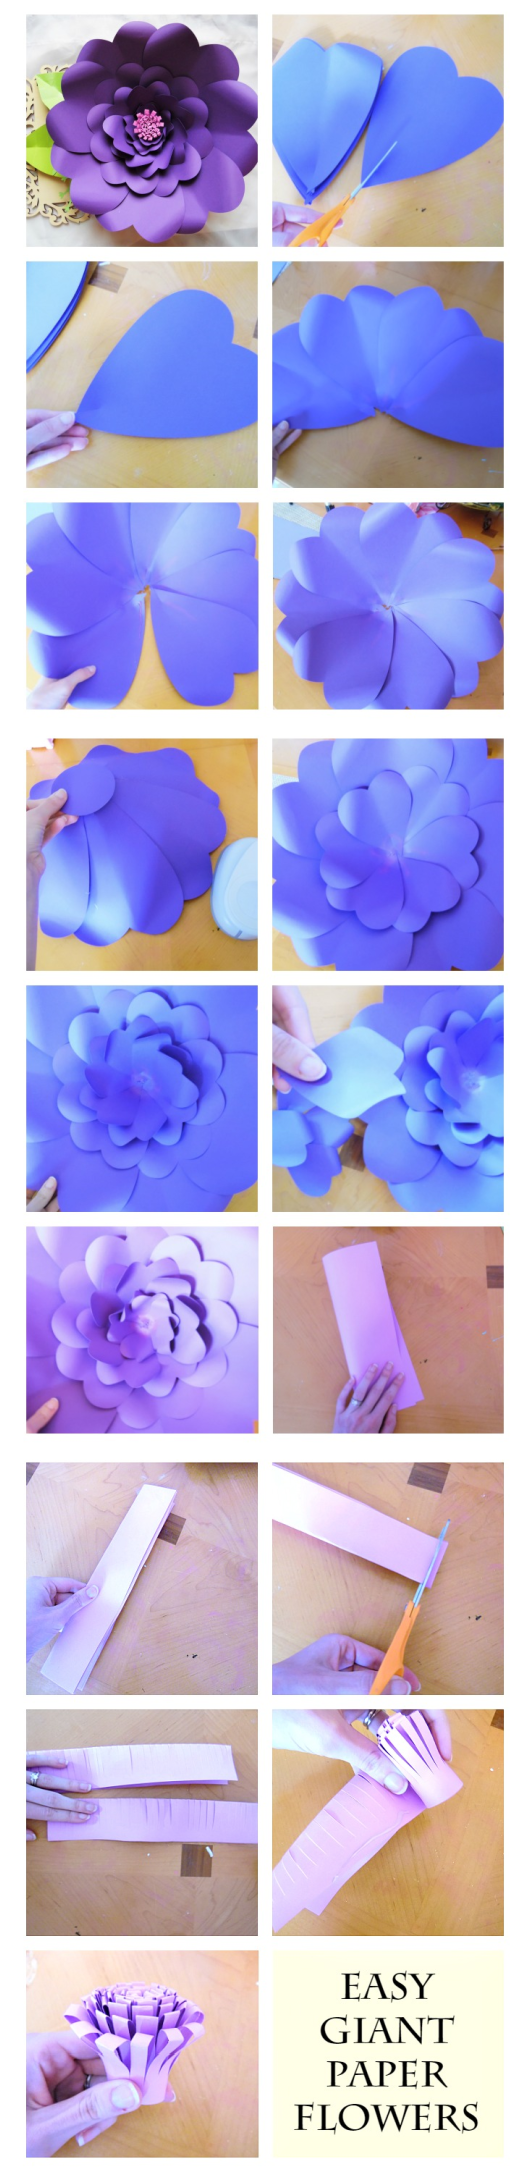 How To Make Giant Paper Flowers With Templates Creative Craft